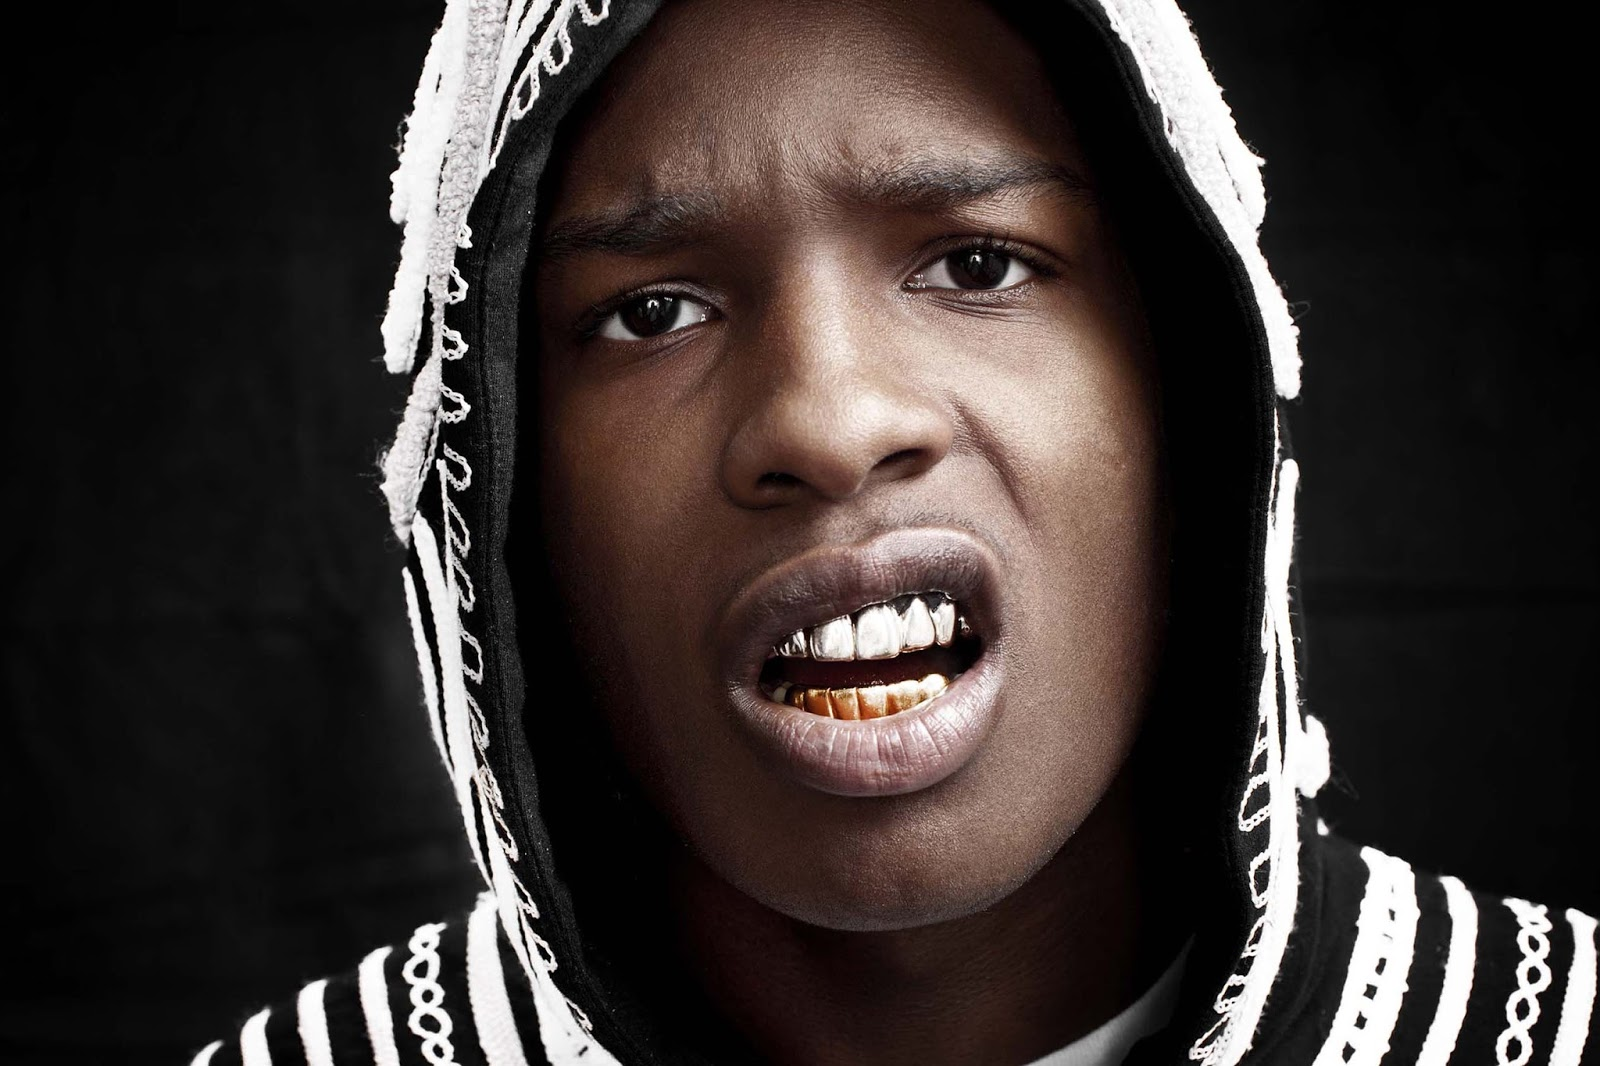 Asap rocky wallpapers wallpapersafari - Asap wallpaper ...